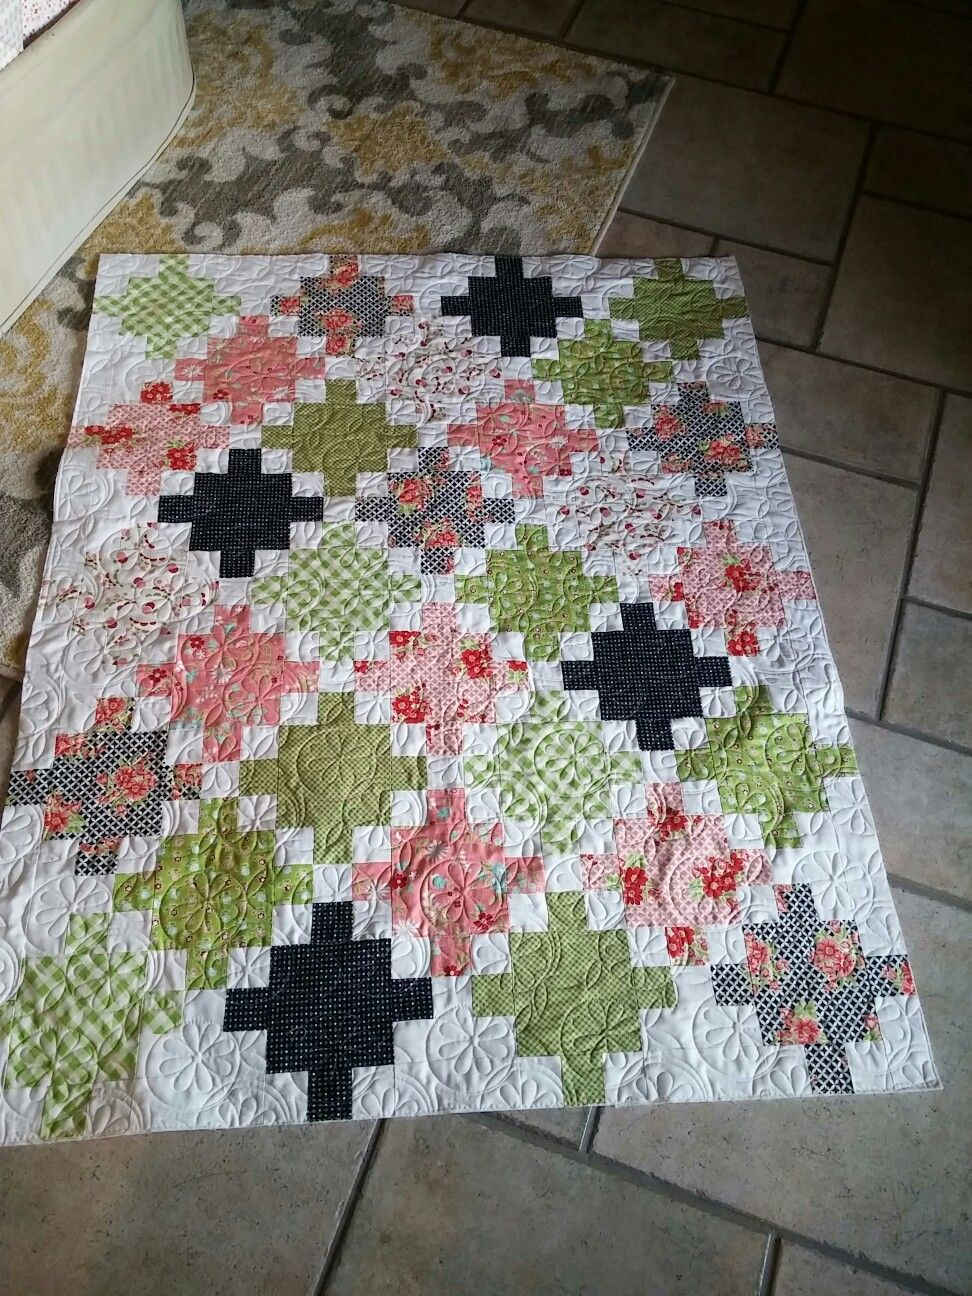 Pin on E2E quilting samples by Olie & Evie